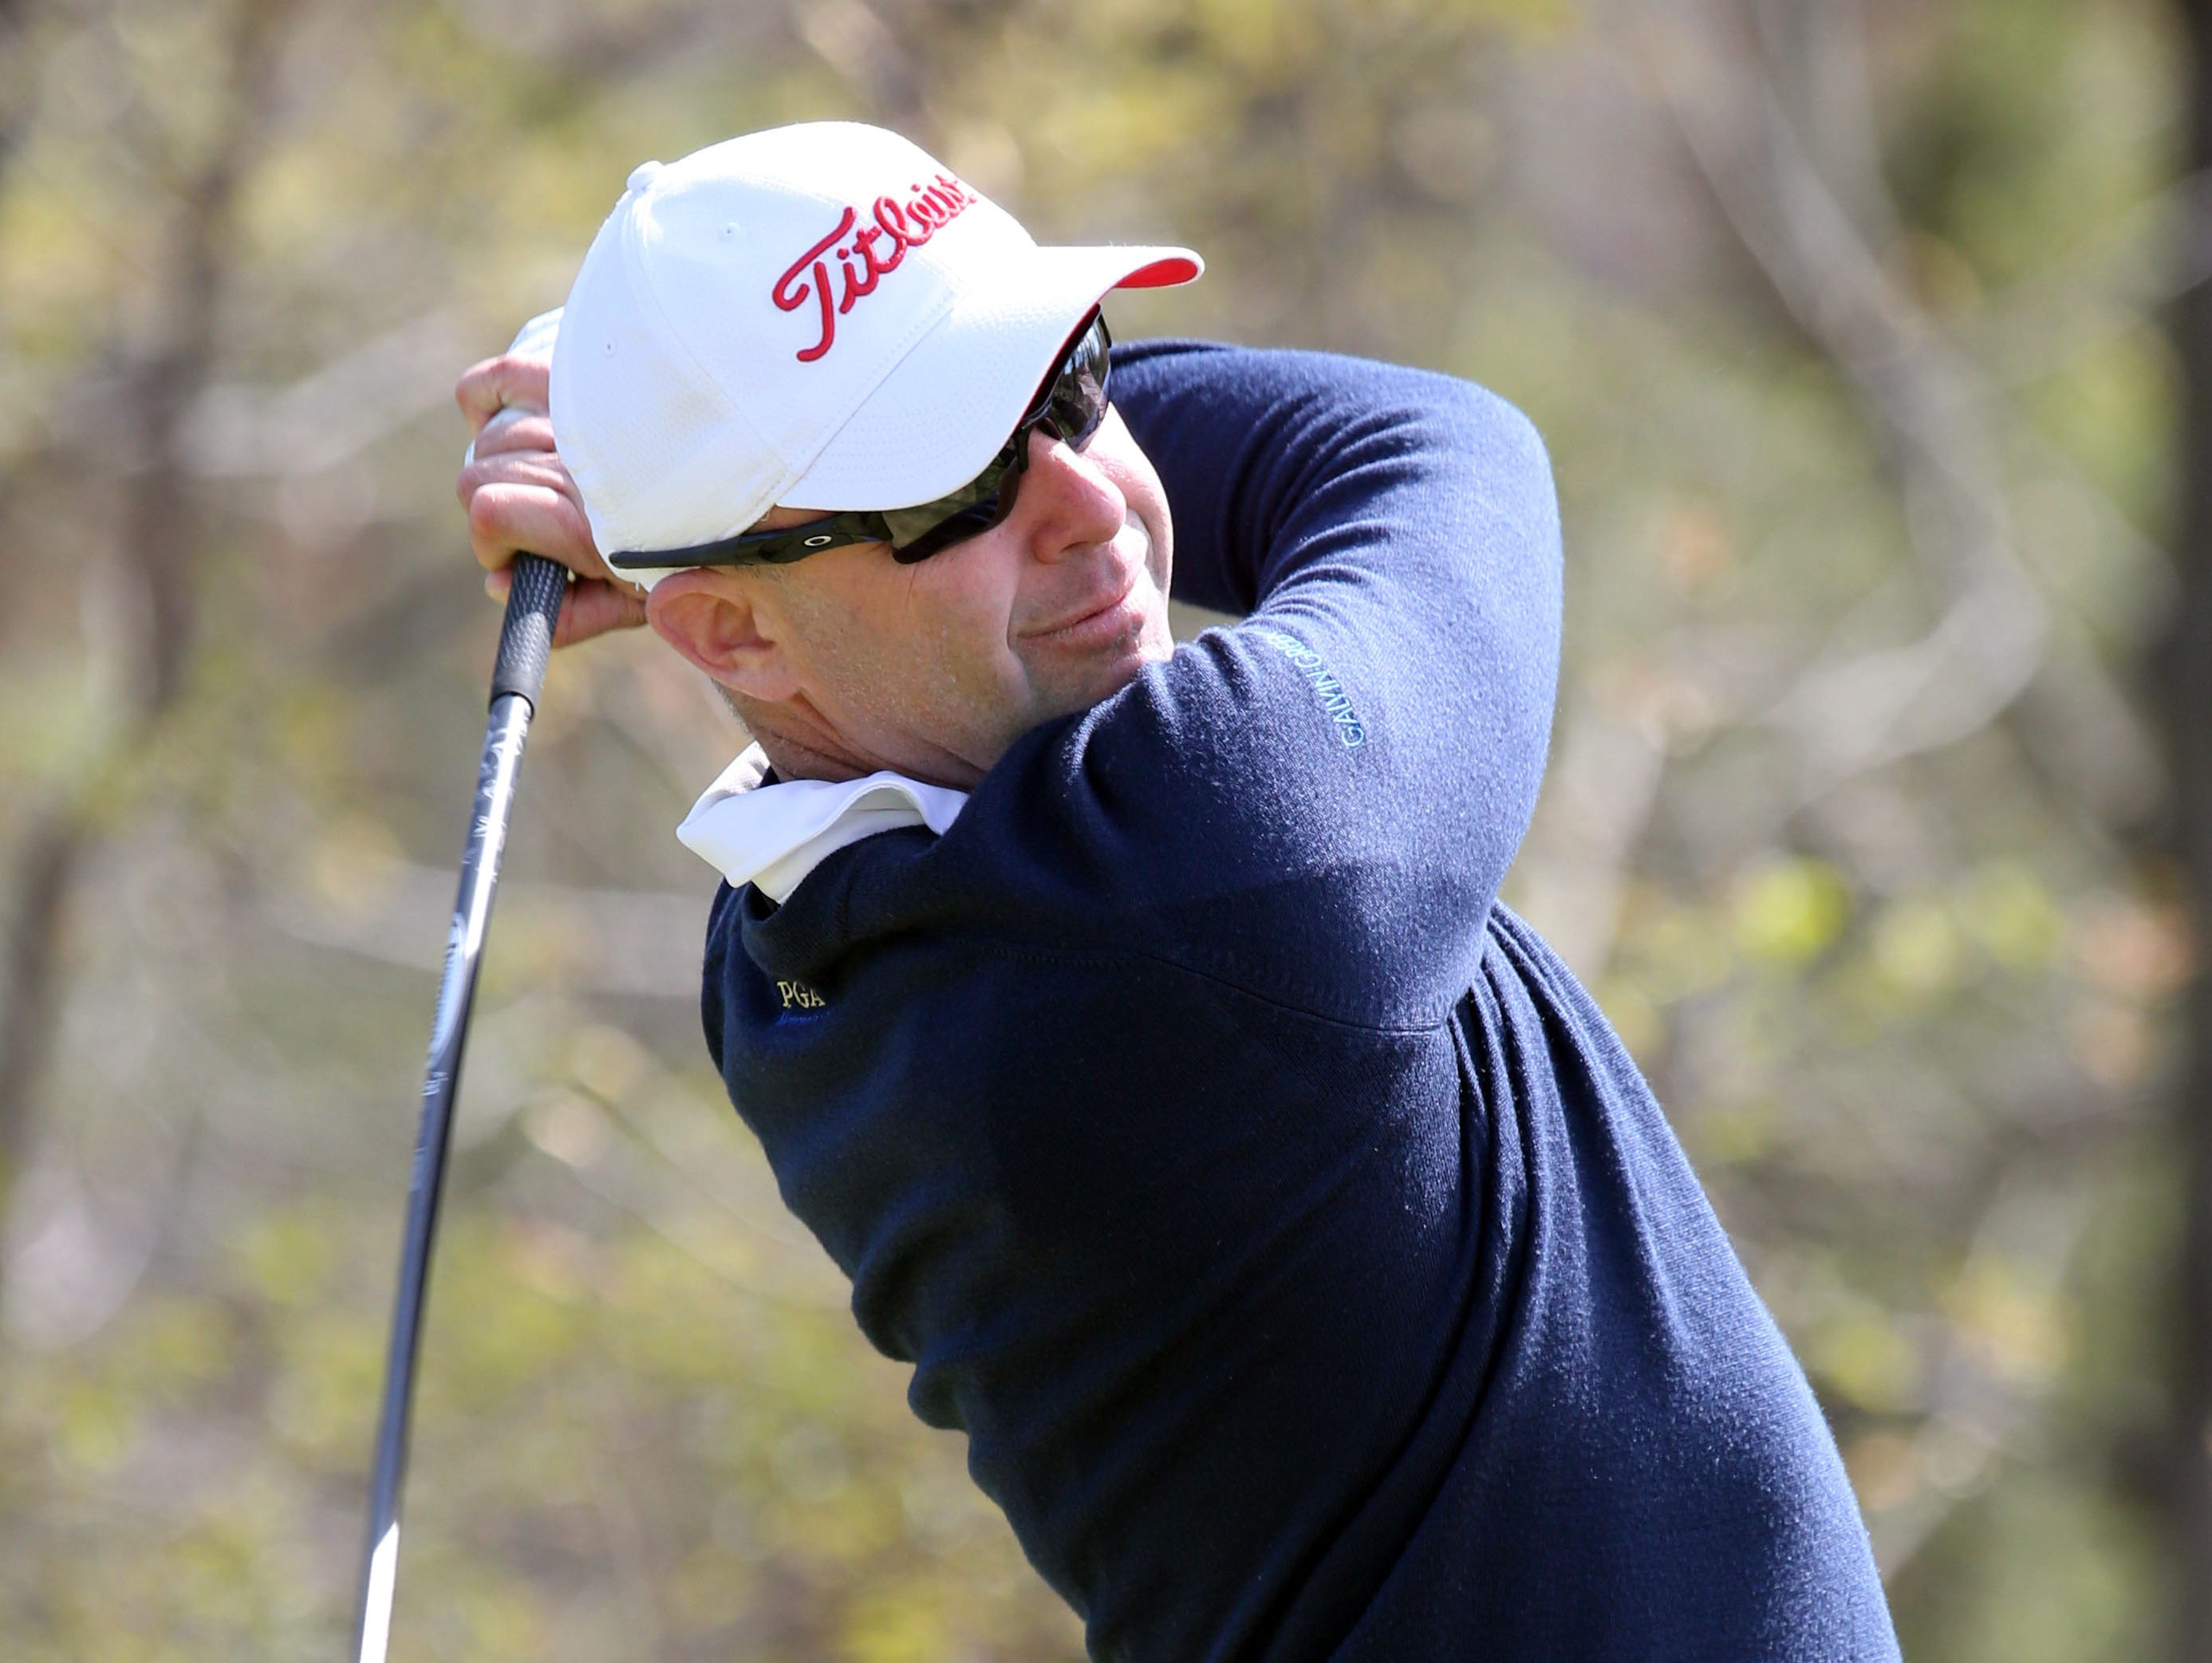 Rob Labritz from the GlenArbor Golf Club hits a tee shot as he plays against Steve Scott from the Paramount Country Club, during the match play final of the MasterCard Westchester PGA Championship at the Apawamis Club in Rye, April 30, 2015. Labritz won the championship.